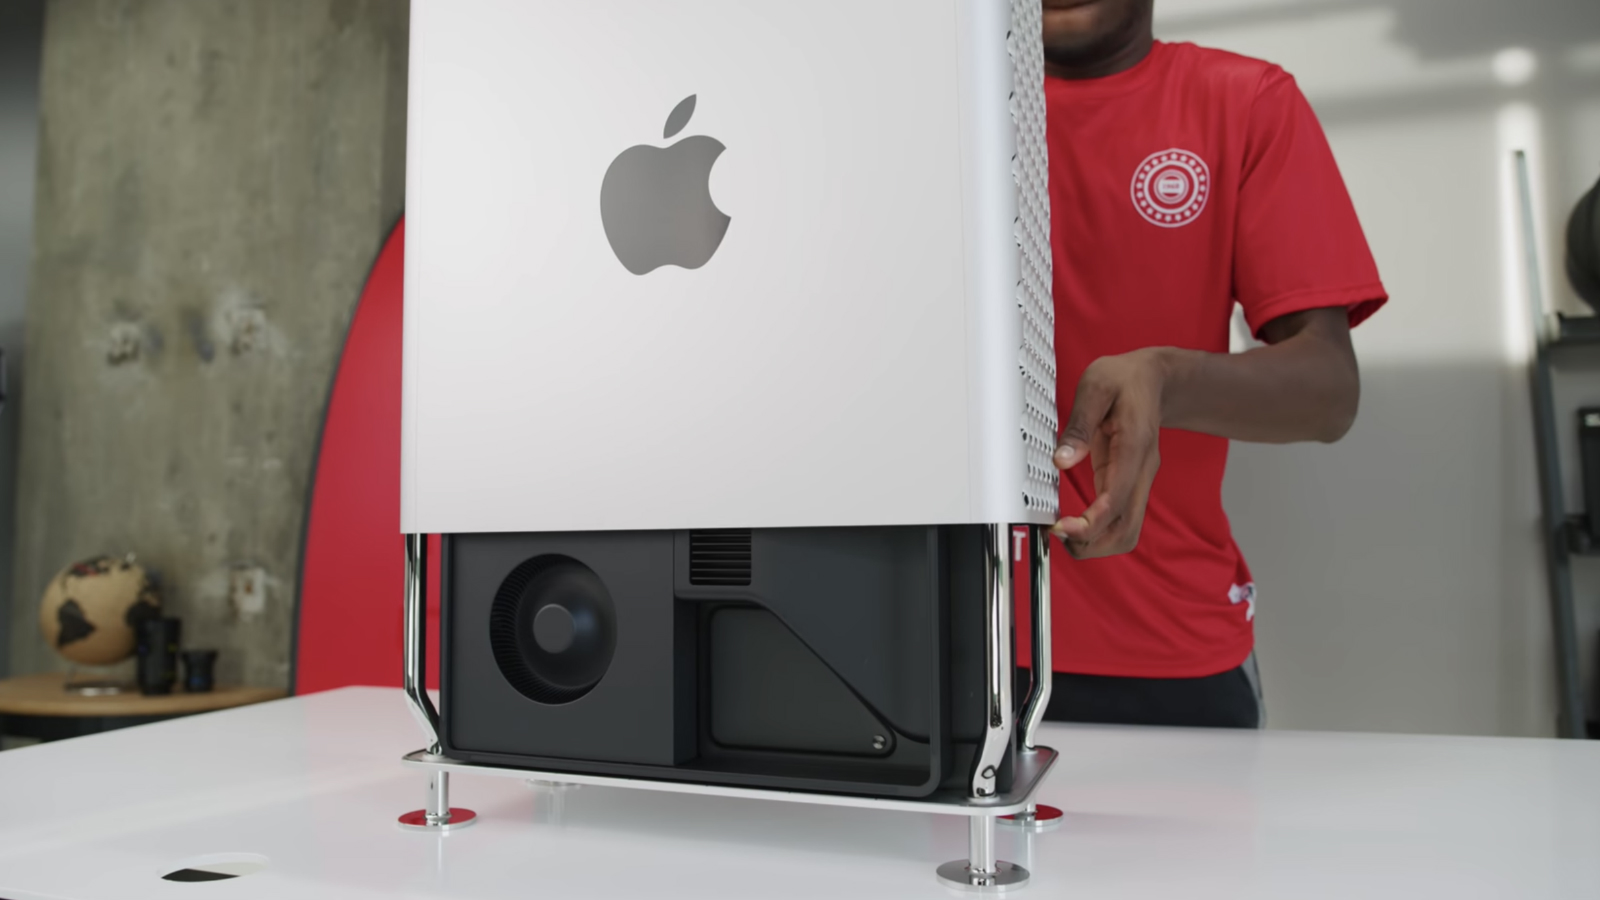 Mac Pro case being removed by Marques Brownlee